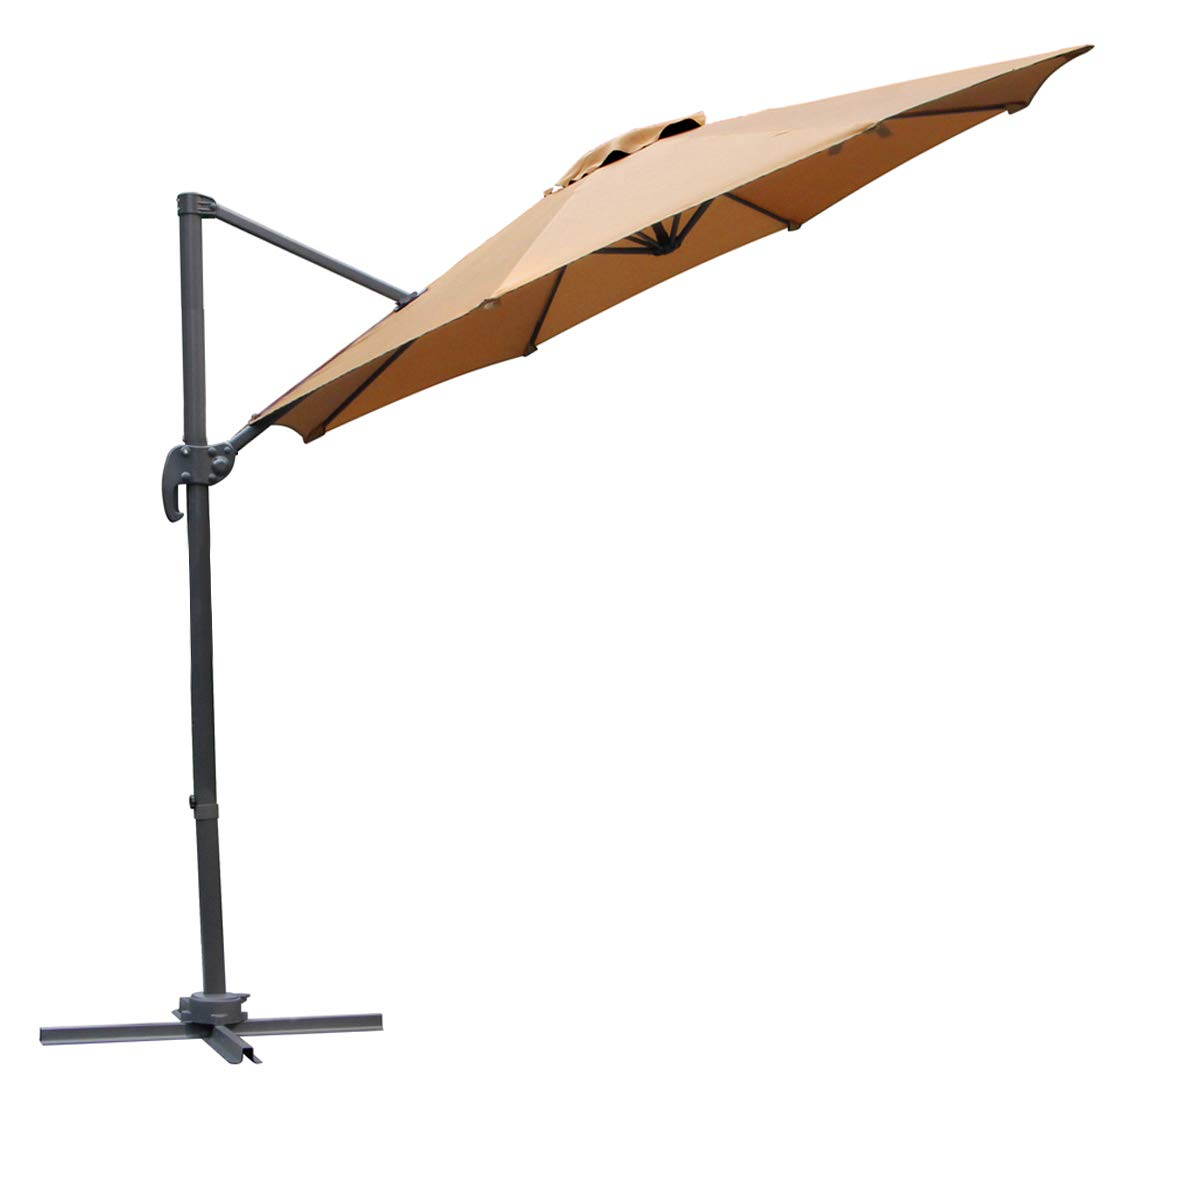 U-MAX Patio 10 FT Cantilever Offset Umbrella Outdoor Hanging Umbrella 360° Rotation with Cross Base, Beige